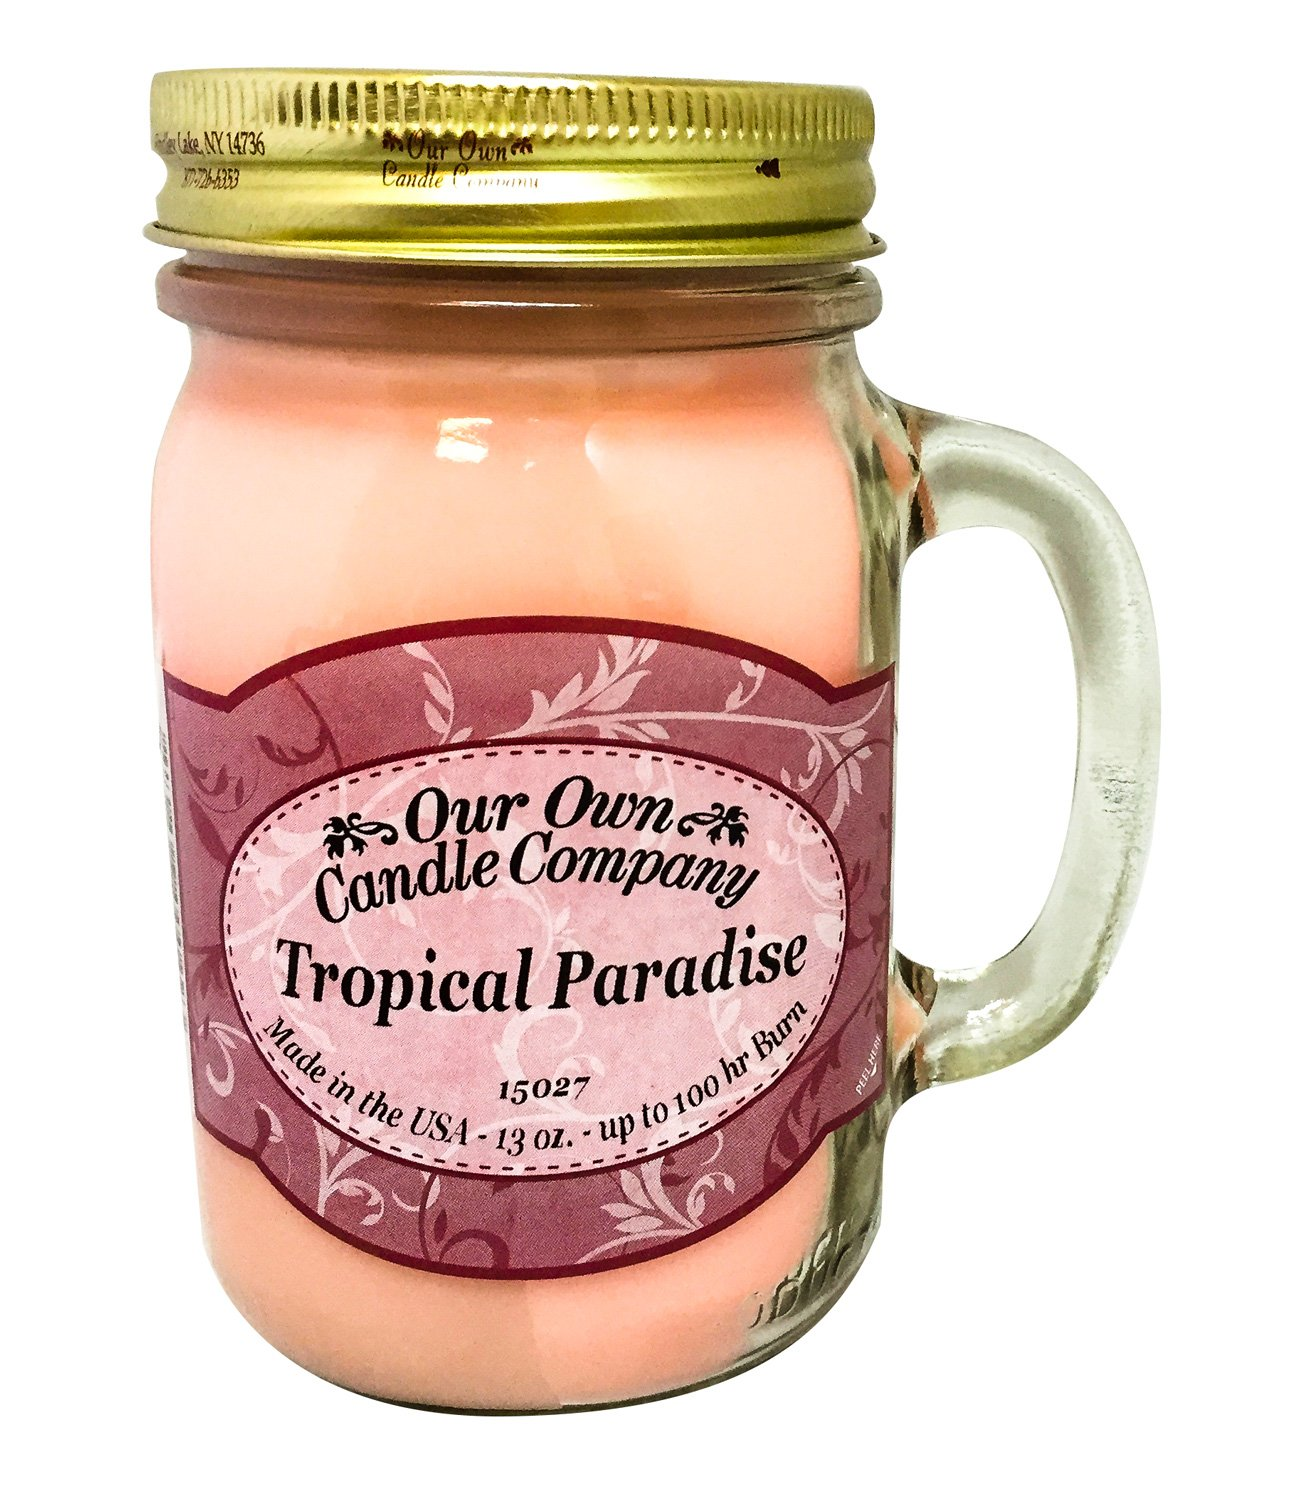 Our Own Candle Company Tropical Paradise Scented 13 Ounce Mason Jar Candle - A juicy blend of Hawaiian coconut, succulent pineapple, bananas and fresh passion fruit make this our most popular summertime island scent 13 oz jar of our specially blended soy and paraffin wax Lead free wick with patented straightener to ensure proper burning every time; Keep wick trimmed to 1/4 inch and remove wick holder before lighting - living-room-decor, living-room, candles - 81F bFrKCIL -